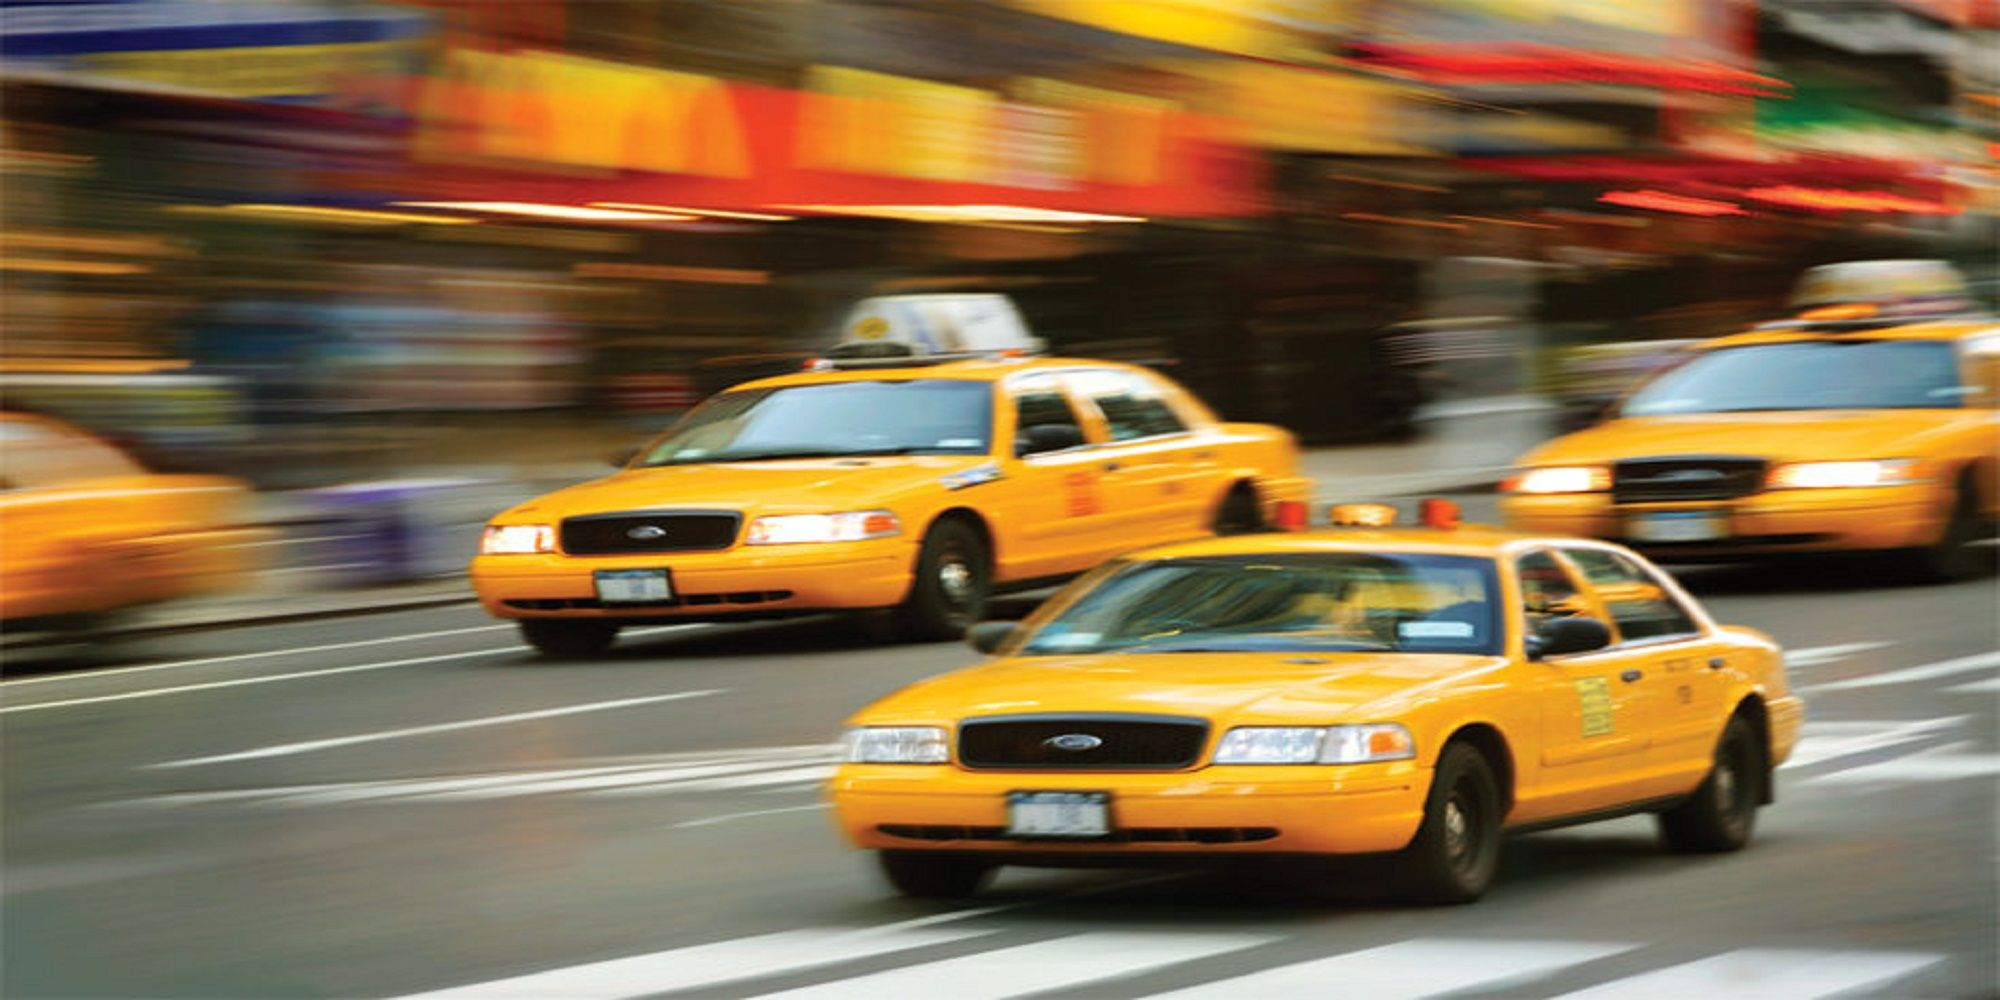 Best Local Taxi Services In My Area Taxi cab, Taxi, Taxi